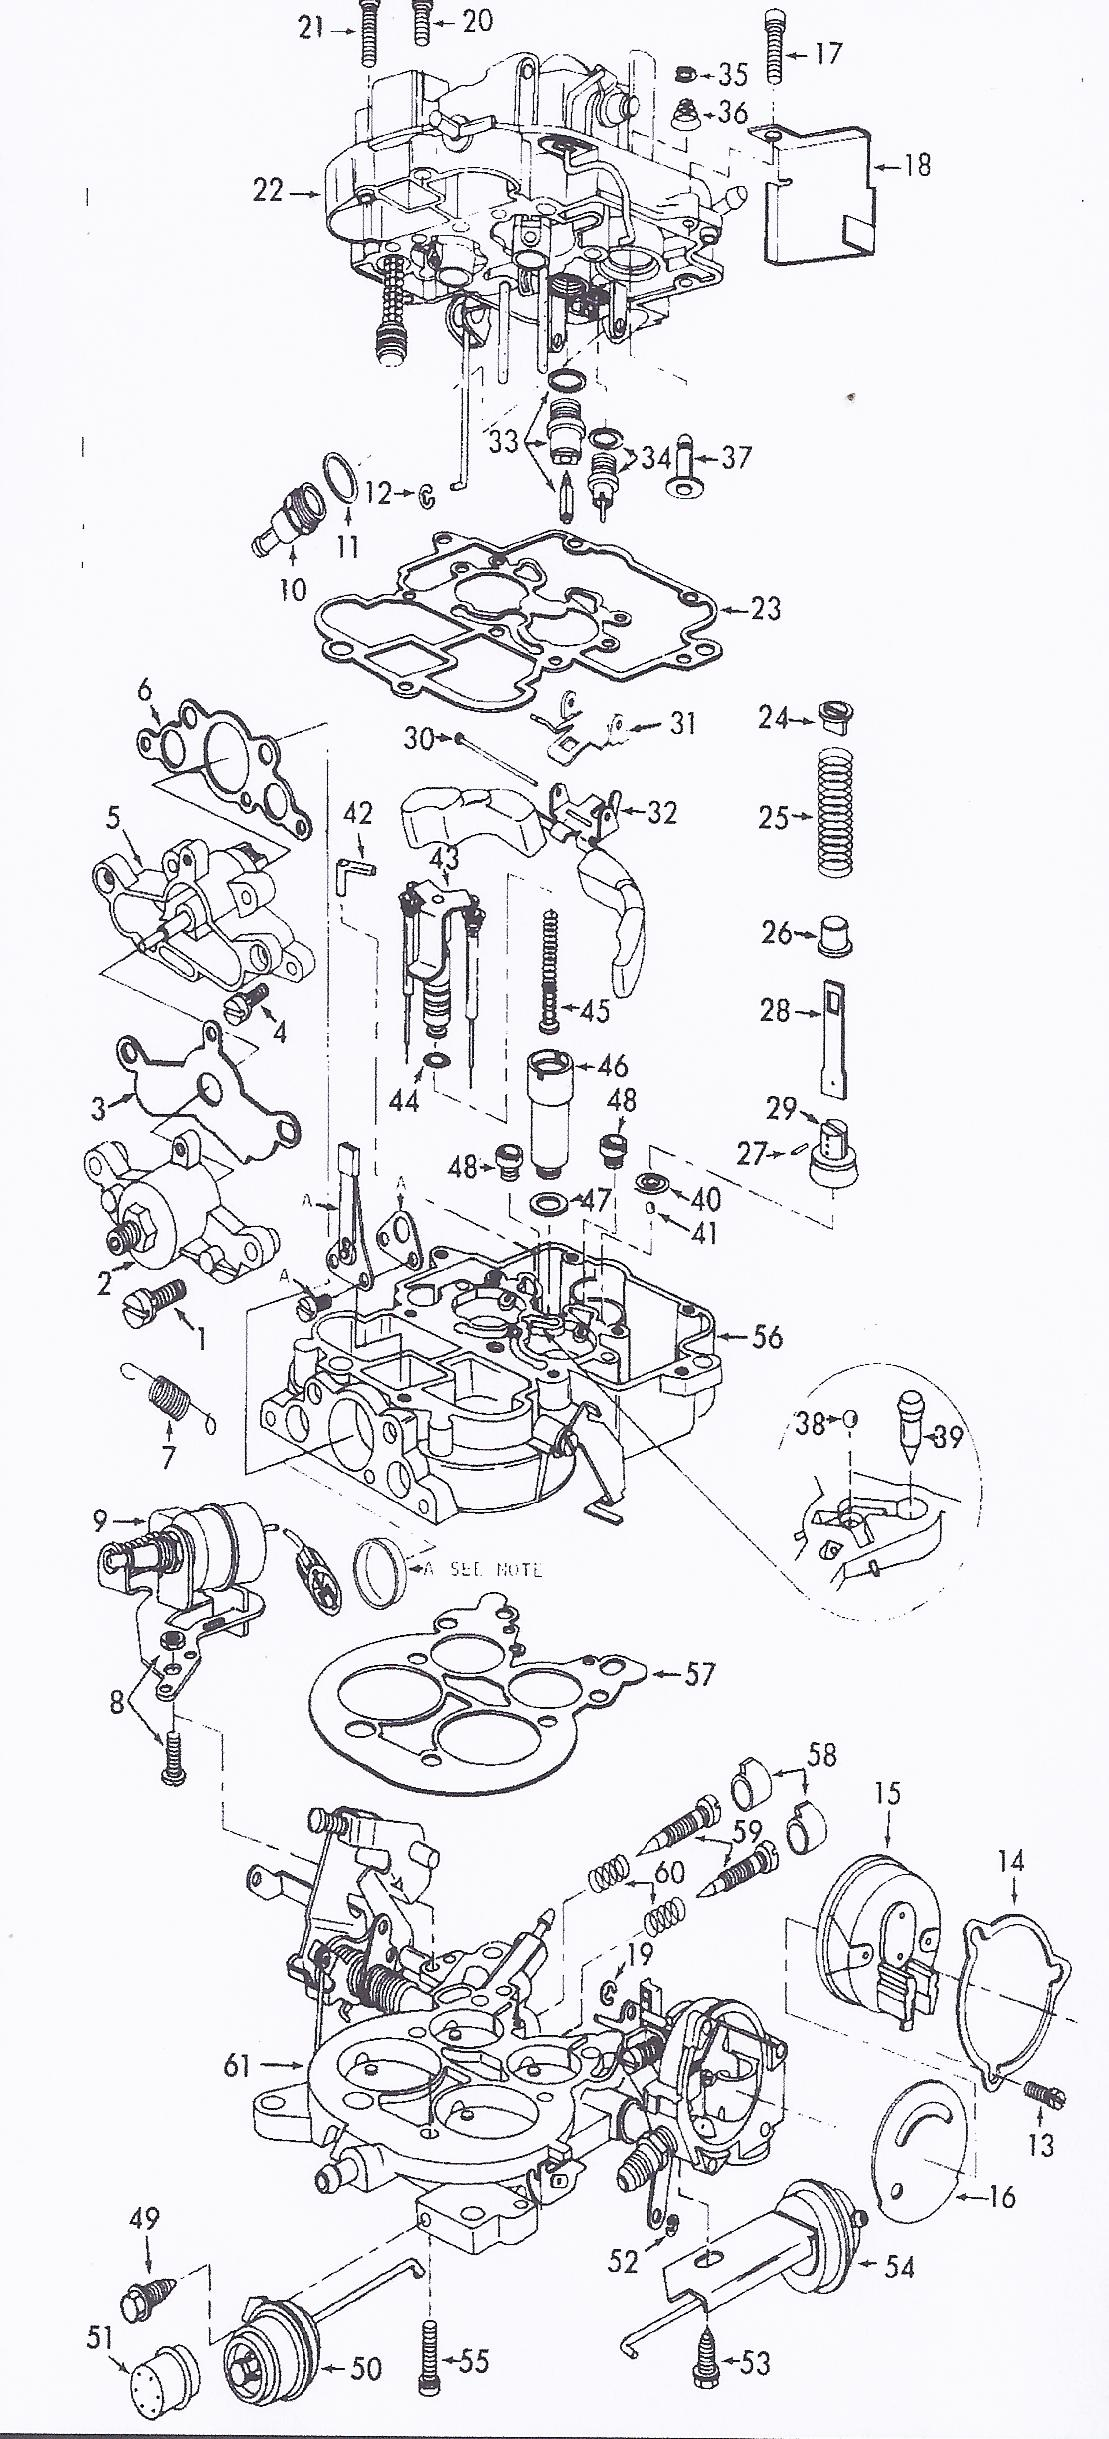 Autolite Carburetor Exploded View